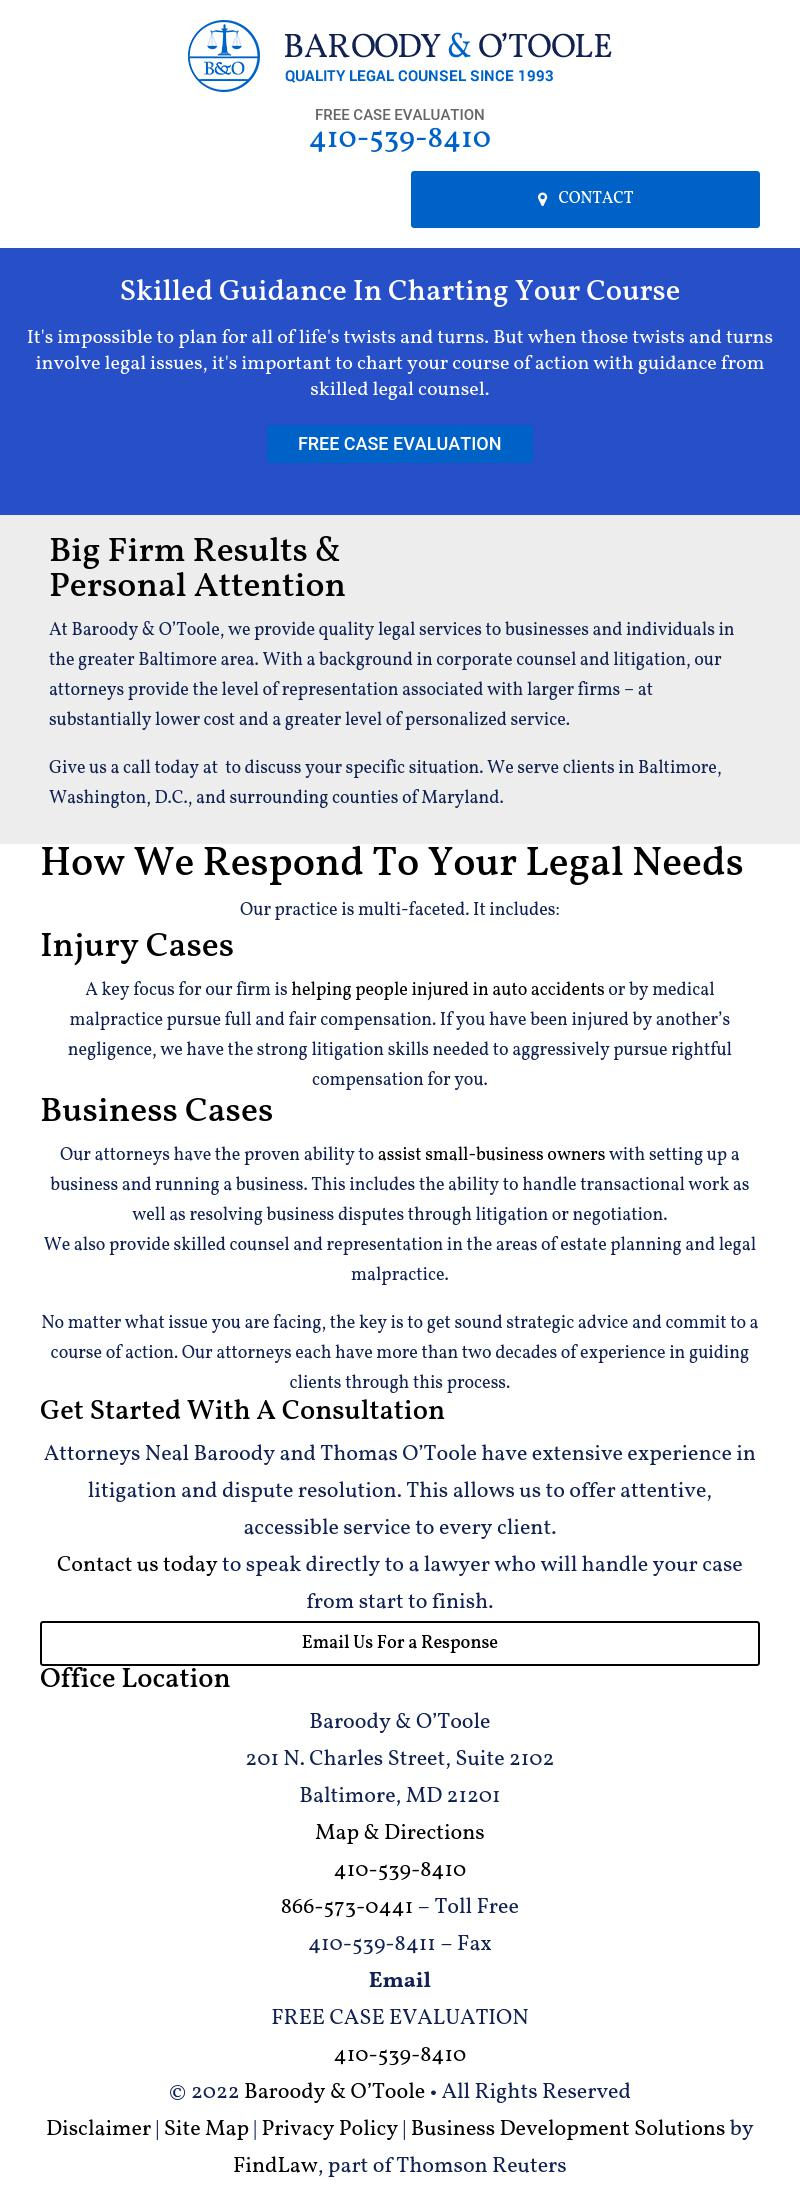 Baroody & O'Toole - Baltimore MD Lawyers